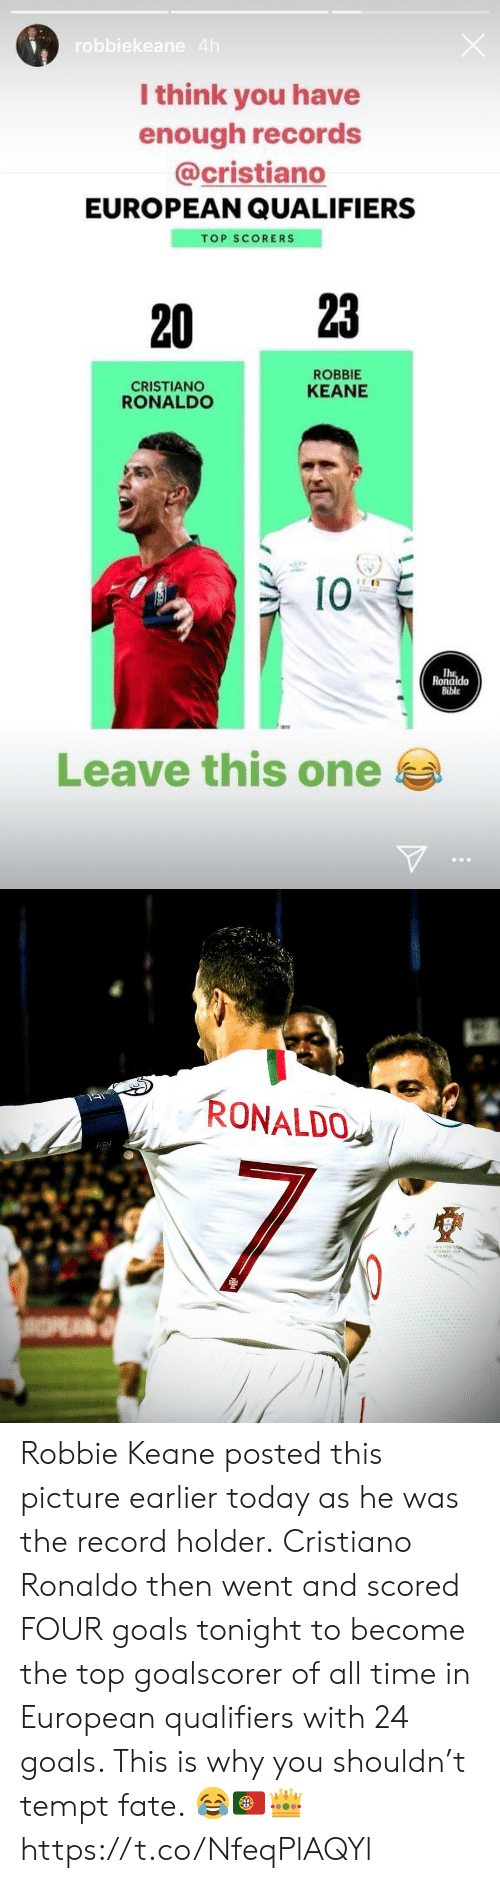 cristiano: robbiekeane 4h  I think you have  enough records  @cristiano  EUROPEAN QUALIFIERS  TOP SCORERS  23  20  ROBBIE  CRISTIANO  RONALDO  KEANE  I0  The  Ronaldo  Bible  Leave this one   RONALDO  AA GAL  SETEMORD 20  NIUS  INPEAN Robbie Keane posted this picture earlier today as he was the record holder.  Cristiano Ronaldo then went and scored FOUR goals tonight to become the top goalscorer of all time in European qualifiers with 24 goals. This is why you shouldn't tempt fate. 😂🇵🇹👑 https://t.co/NfeqPlAQYl